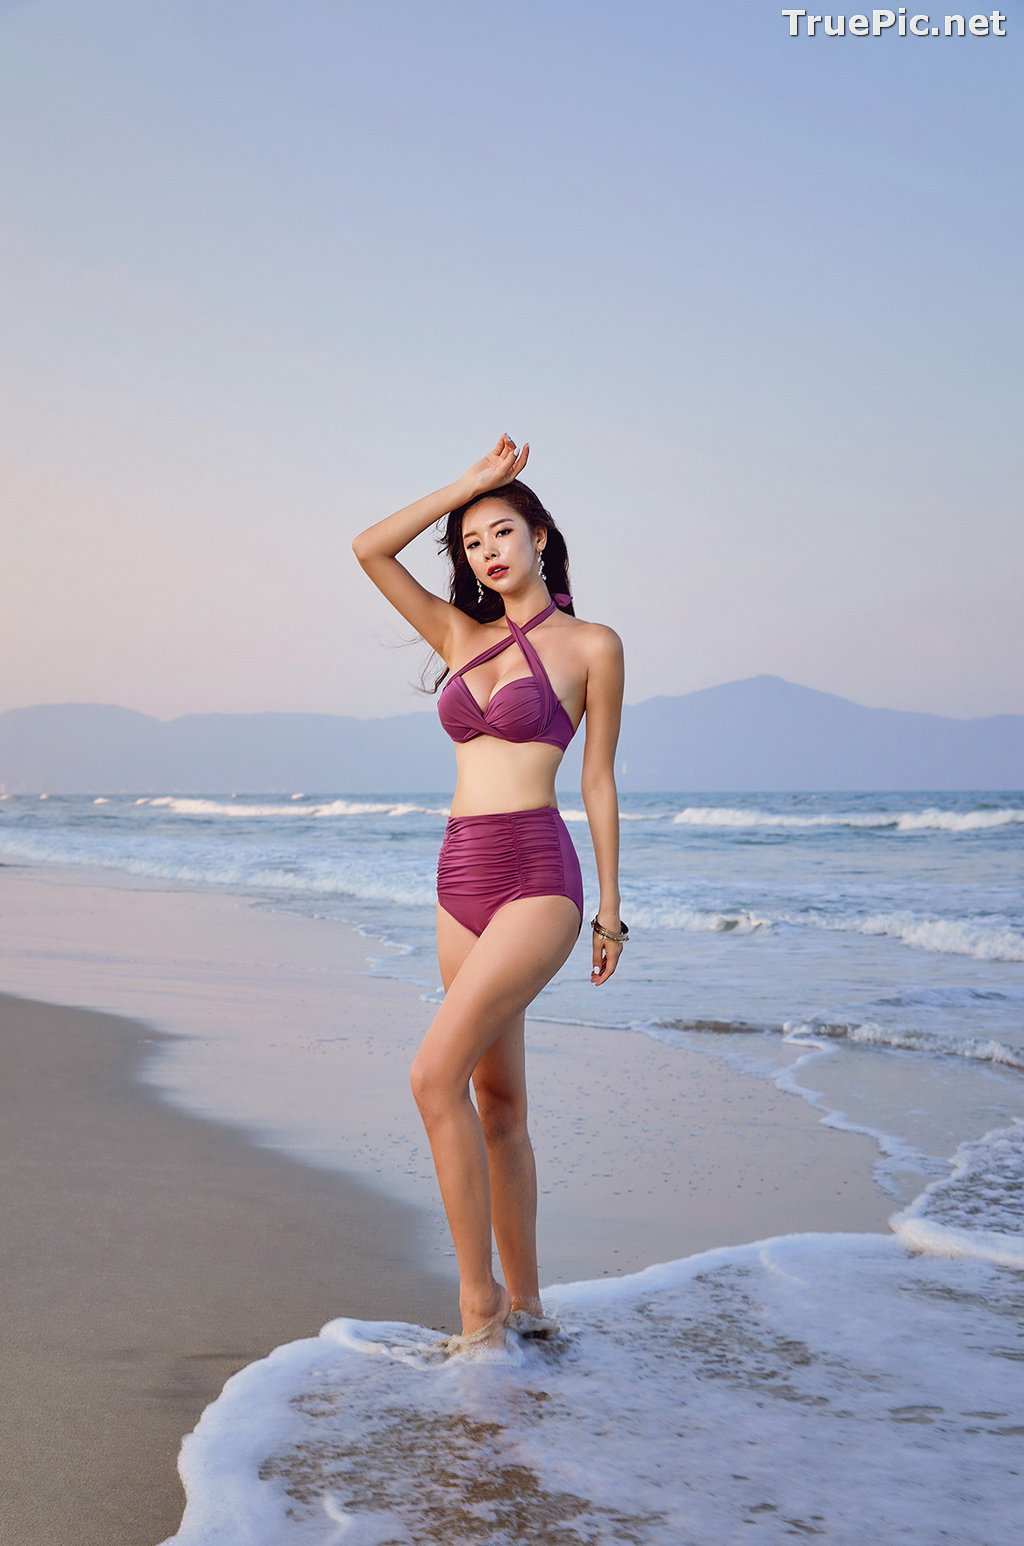 Image Park Da Hyun - Korean Fashion Model - RoseMellow Purple Bikini - TruePic.net - Picture-8